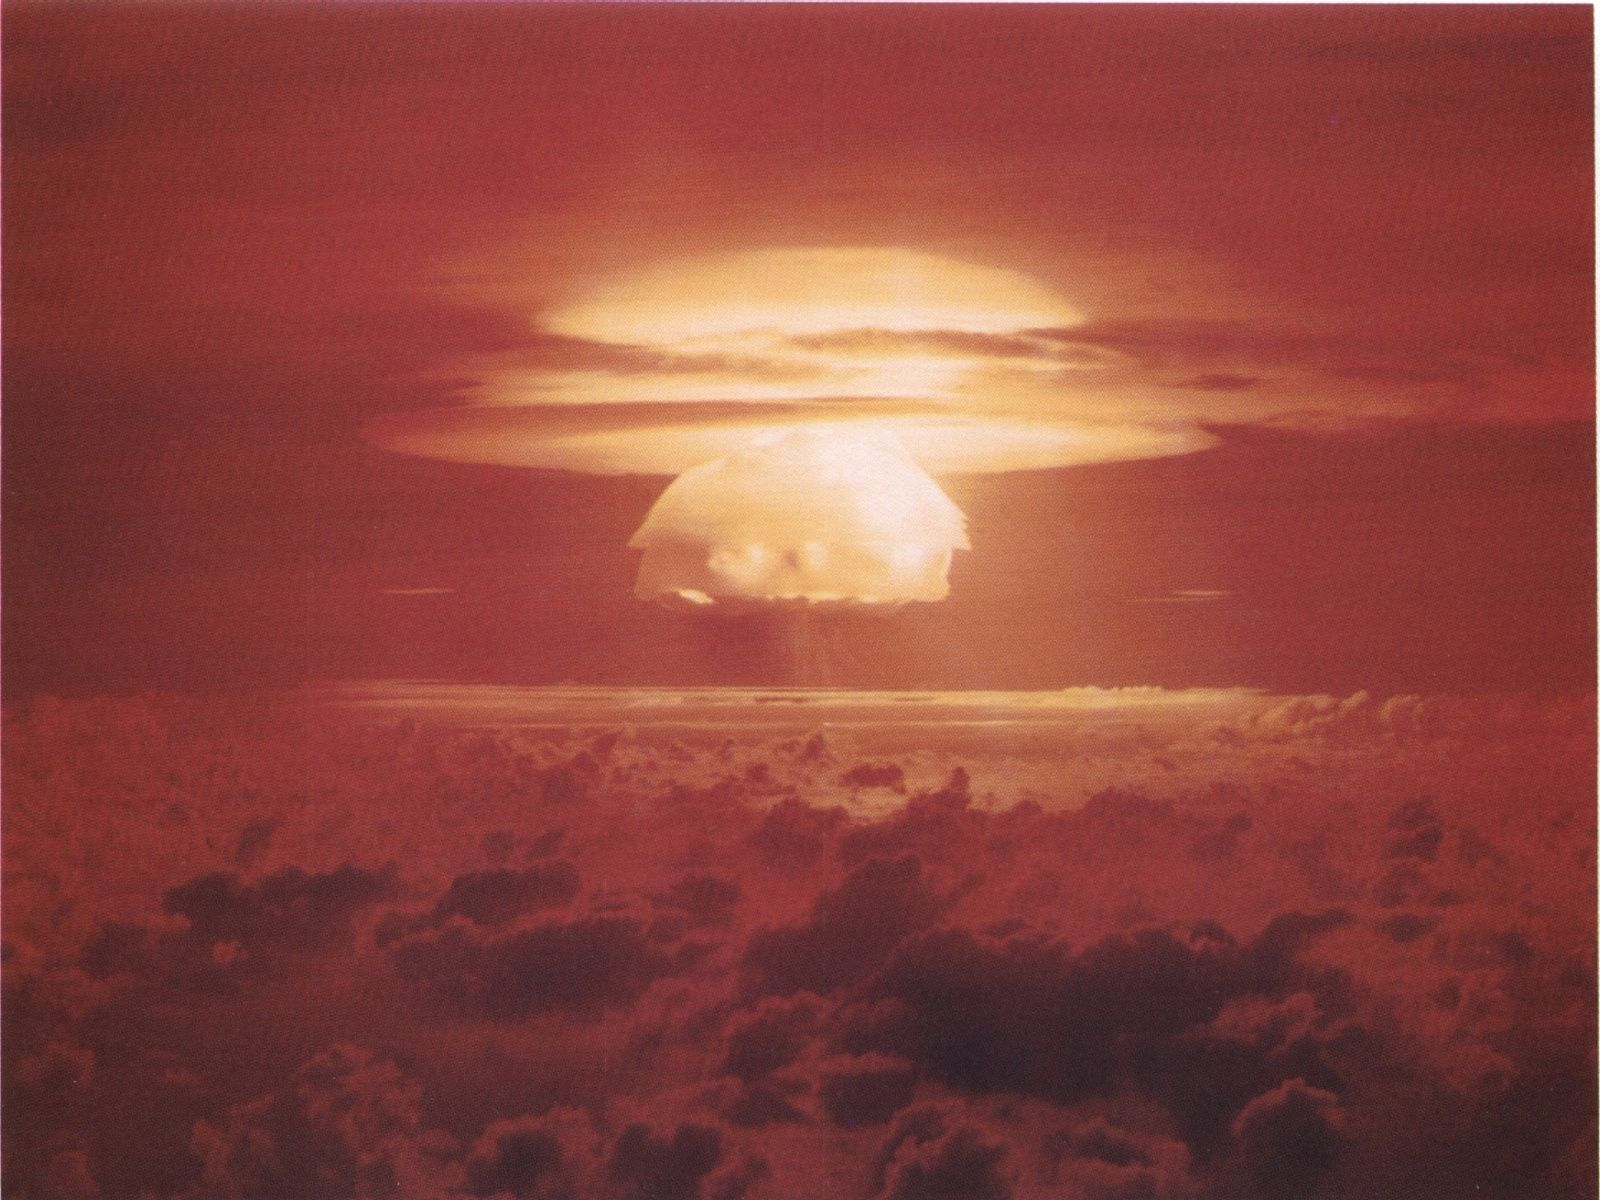 460,000 Premature Deaths: The Horror That Was Nuclear Weapons Testing